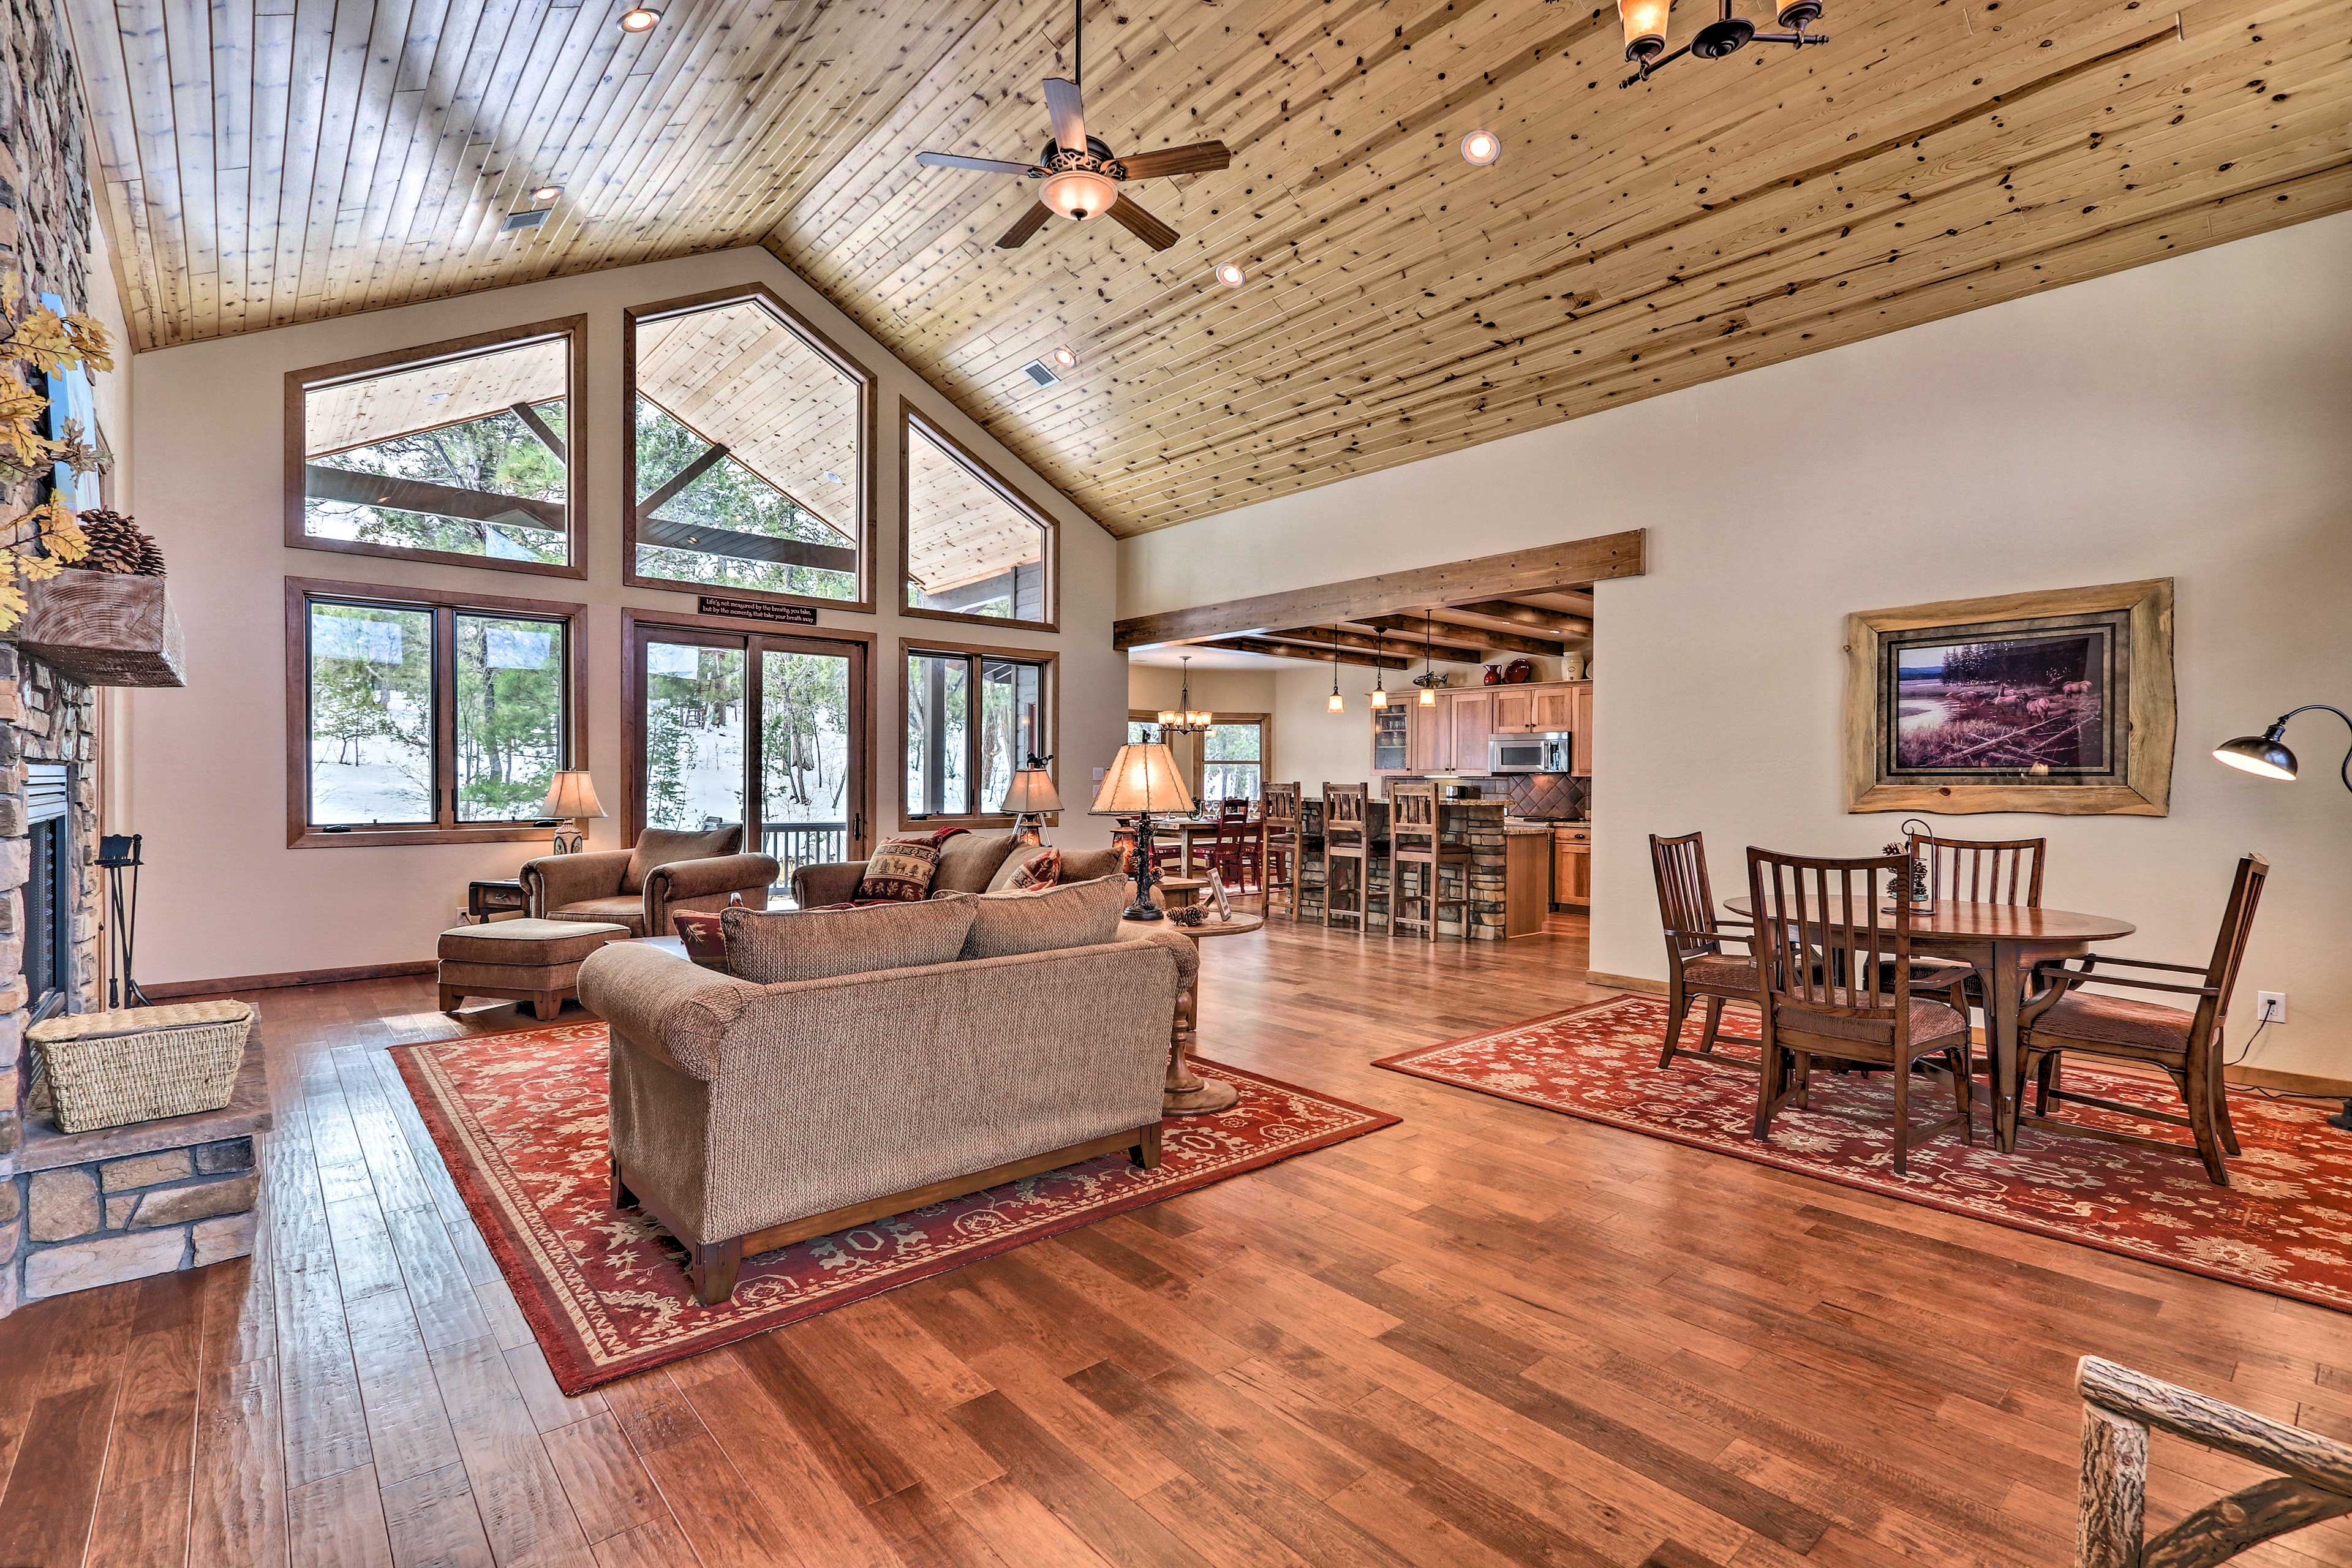 Grand floor-to-ceiling windows bring the outdoors inside!